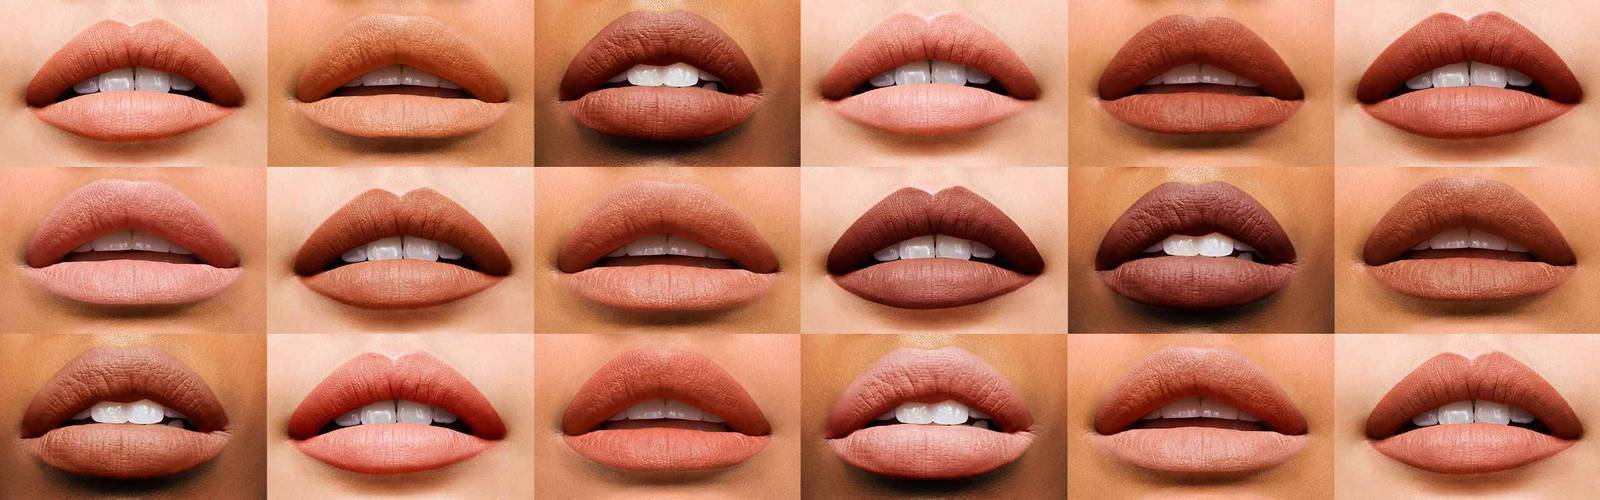 maybelline-lips-color-sensational-inti-matte-nudes-pdp-hero